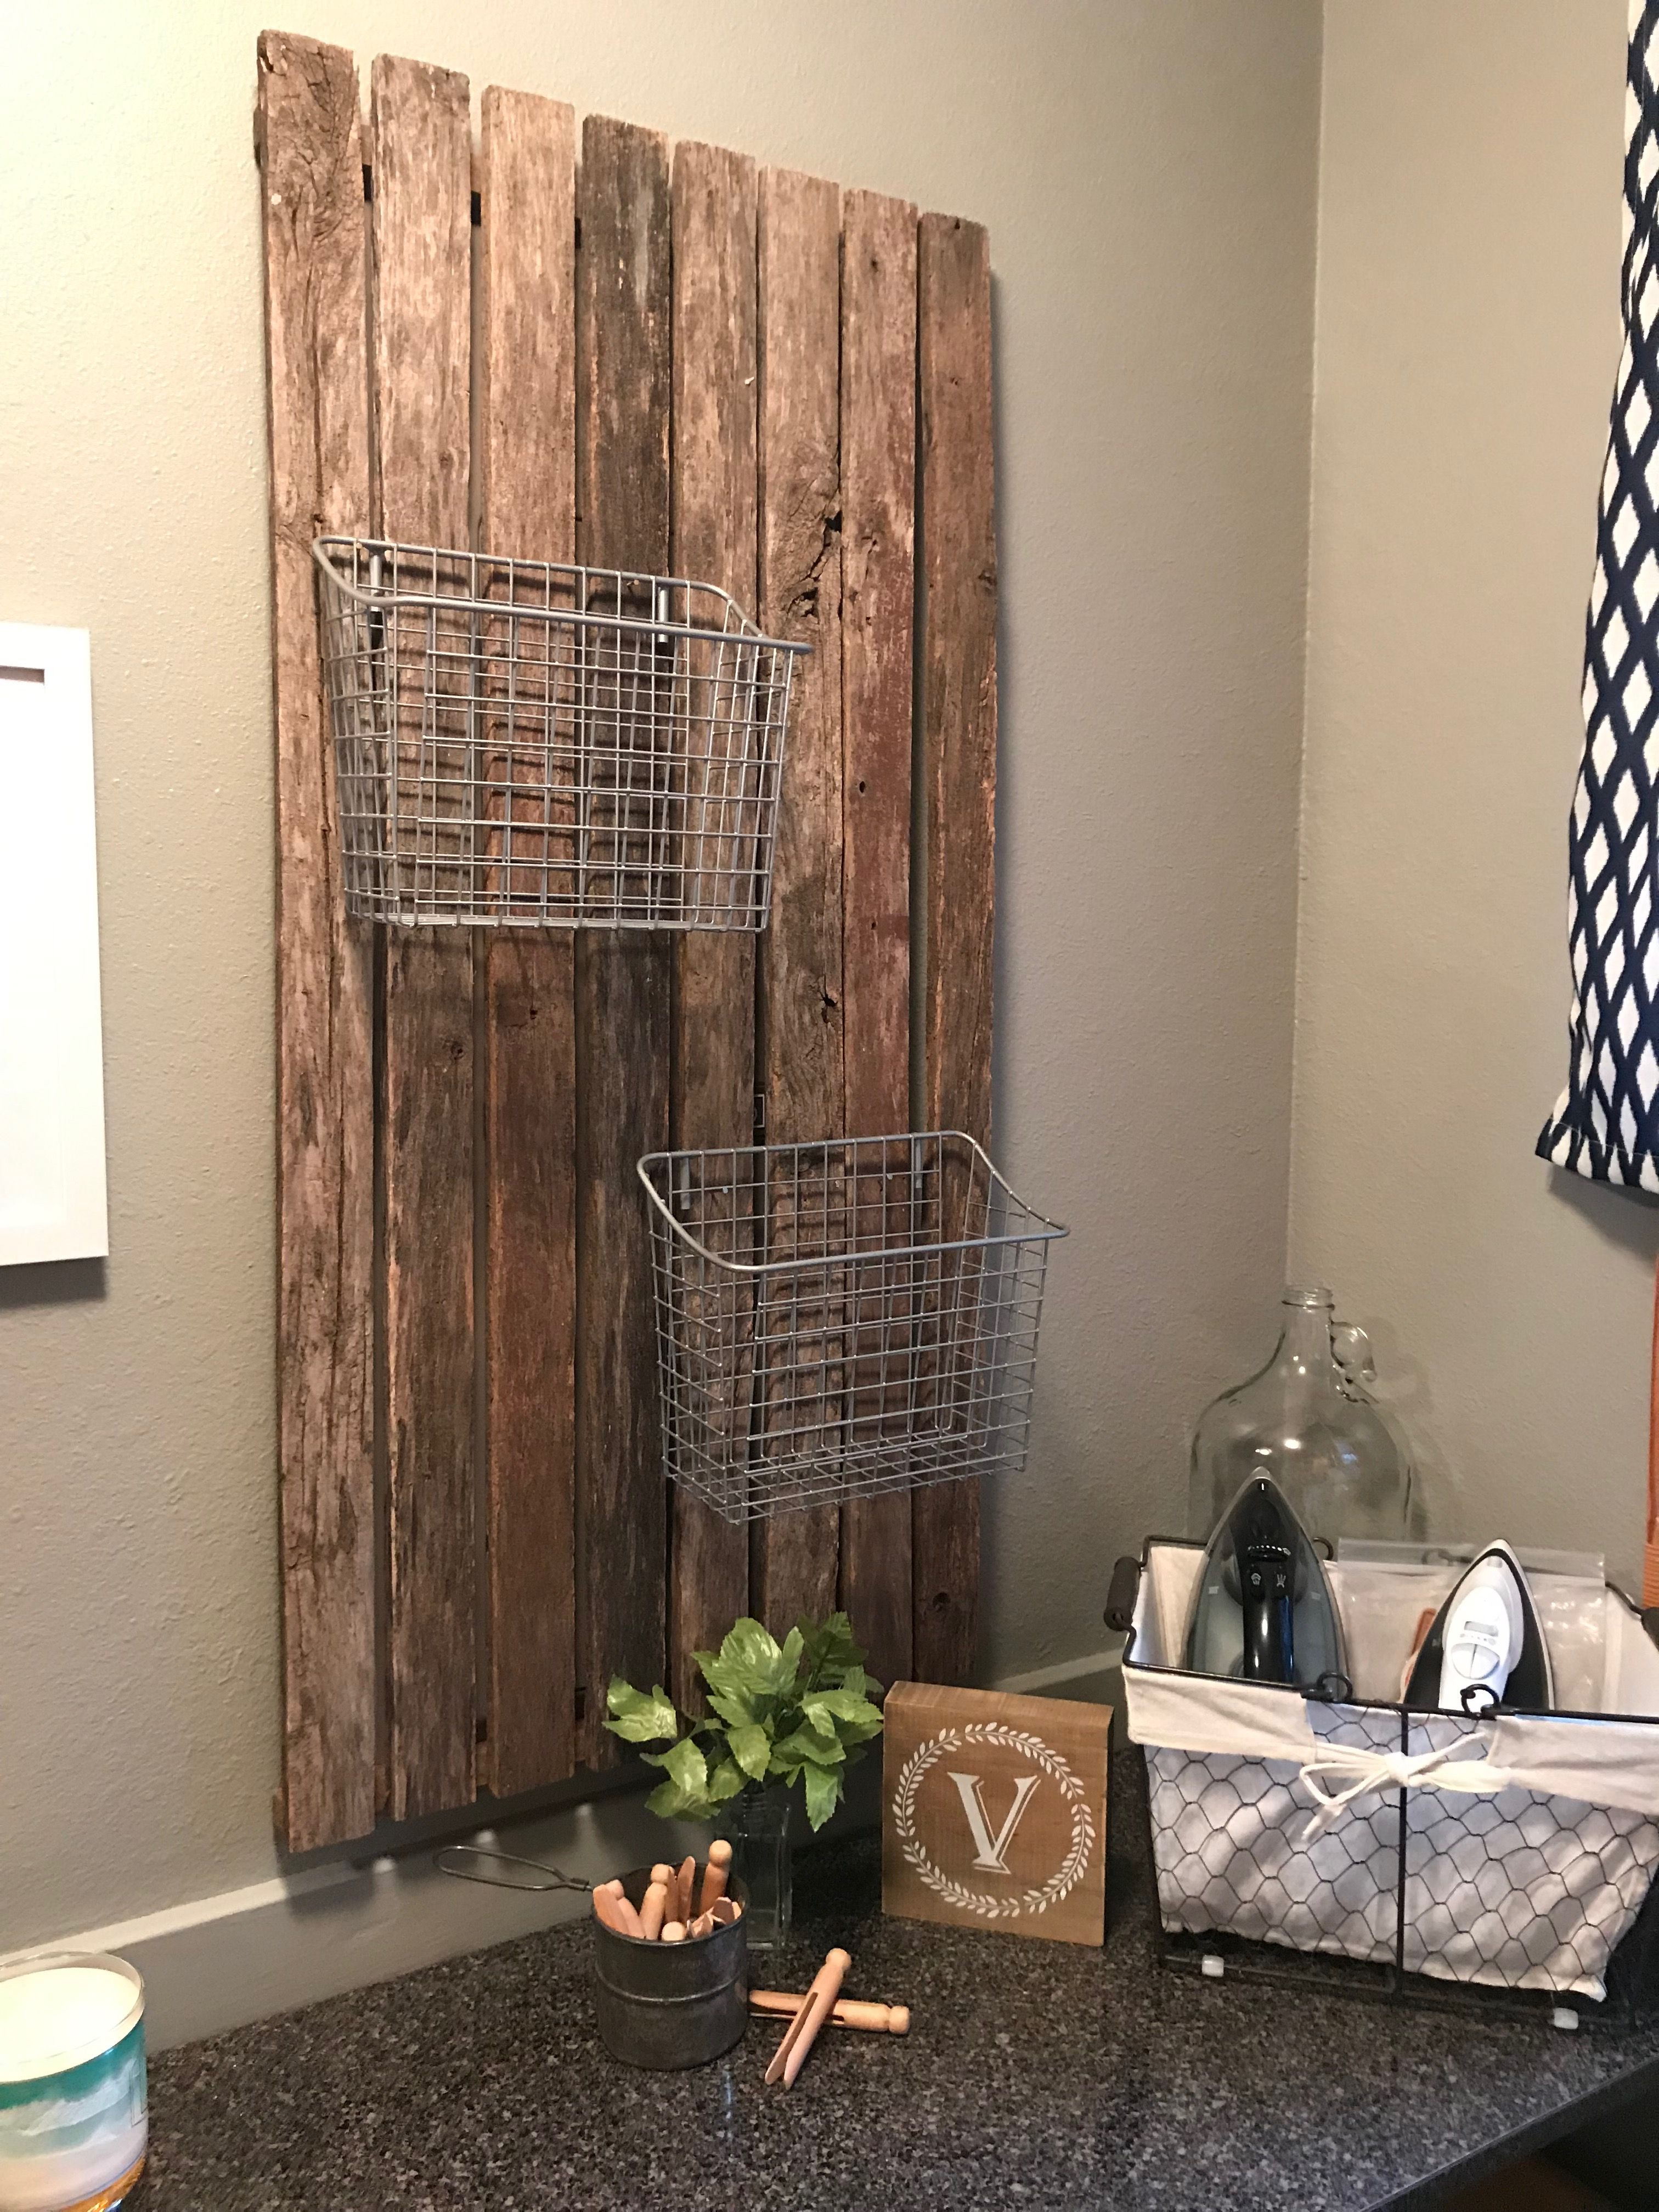 Repurposed wood to cover fuse box in laundry room...❤️   Repurposed wood,  Laundry mud room, Fuse box coverPinterest